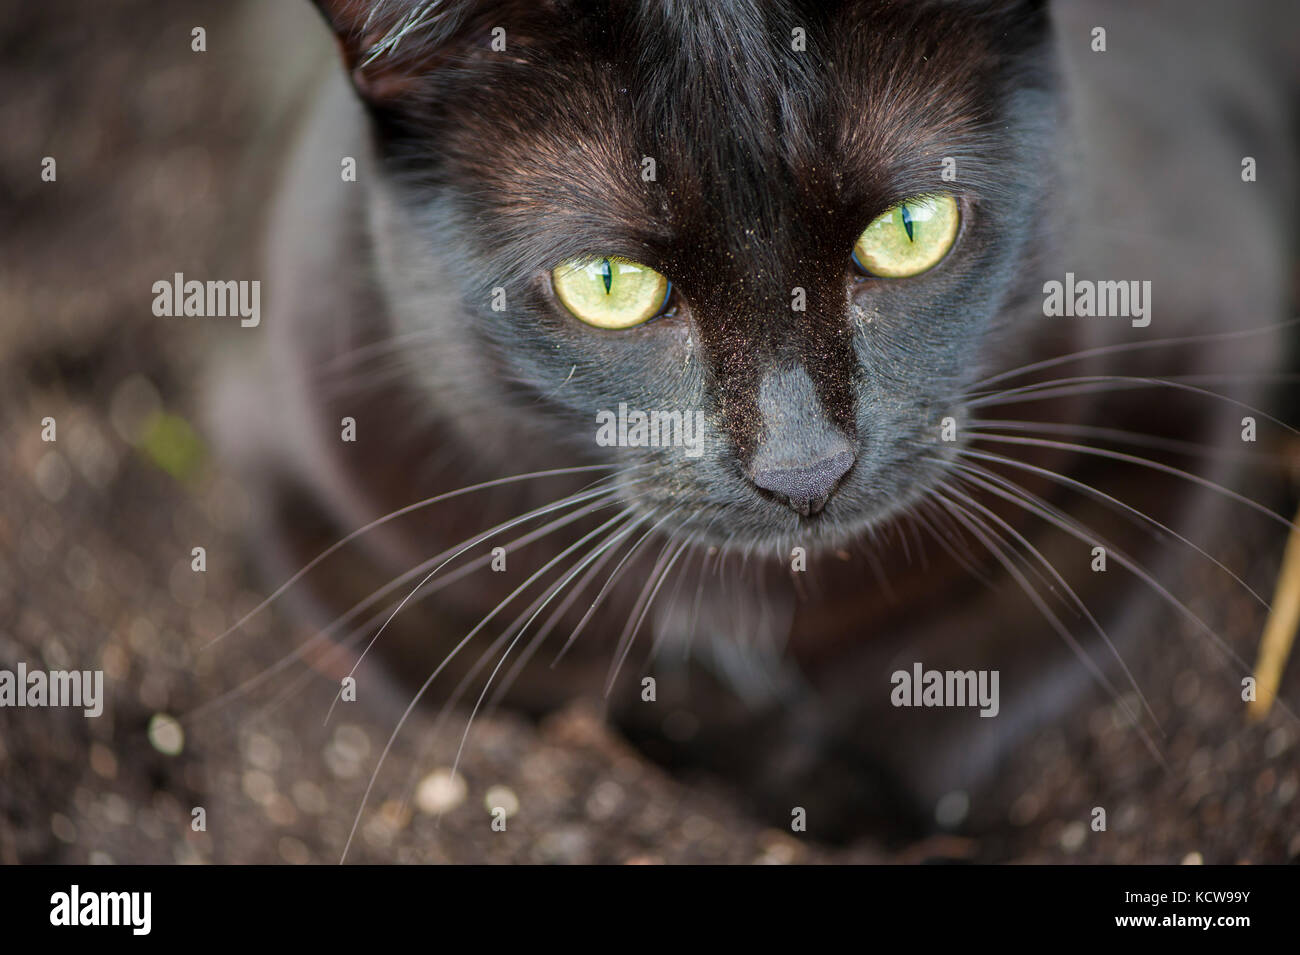 Black Cat Staring Intently - Stock Image